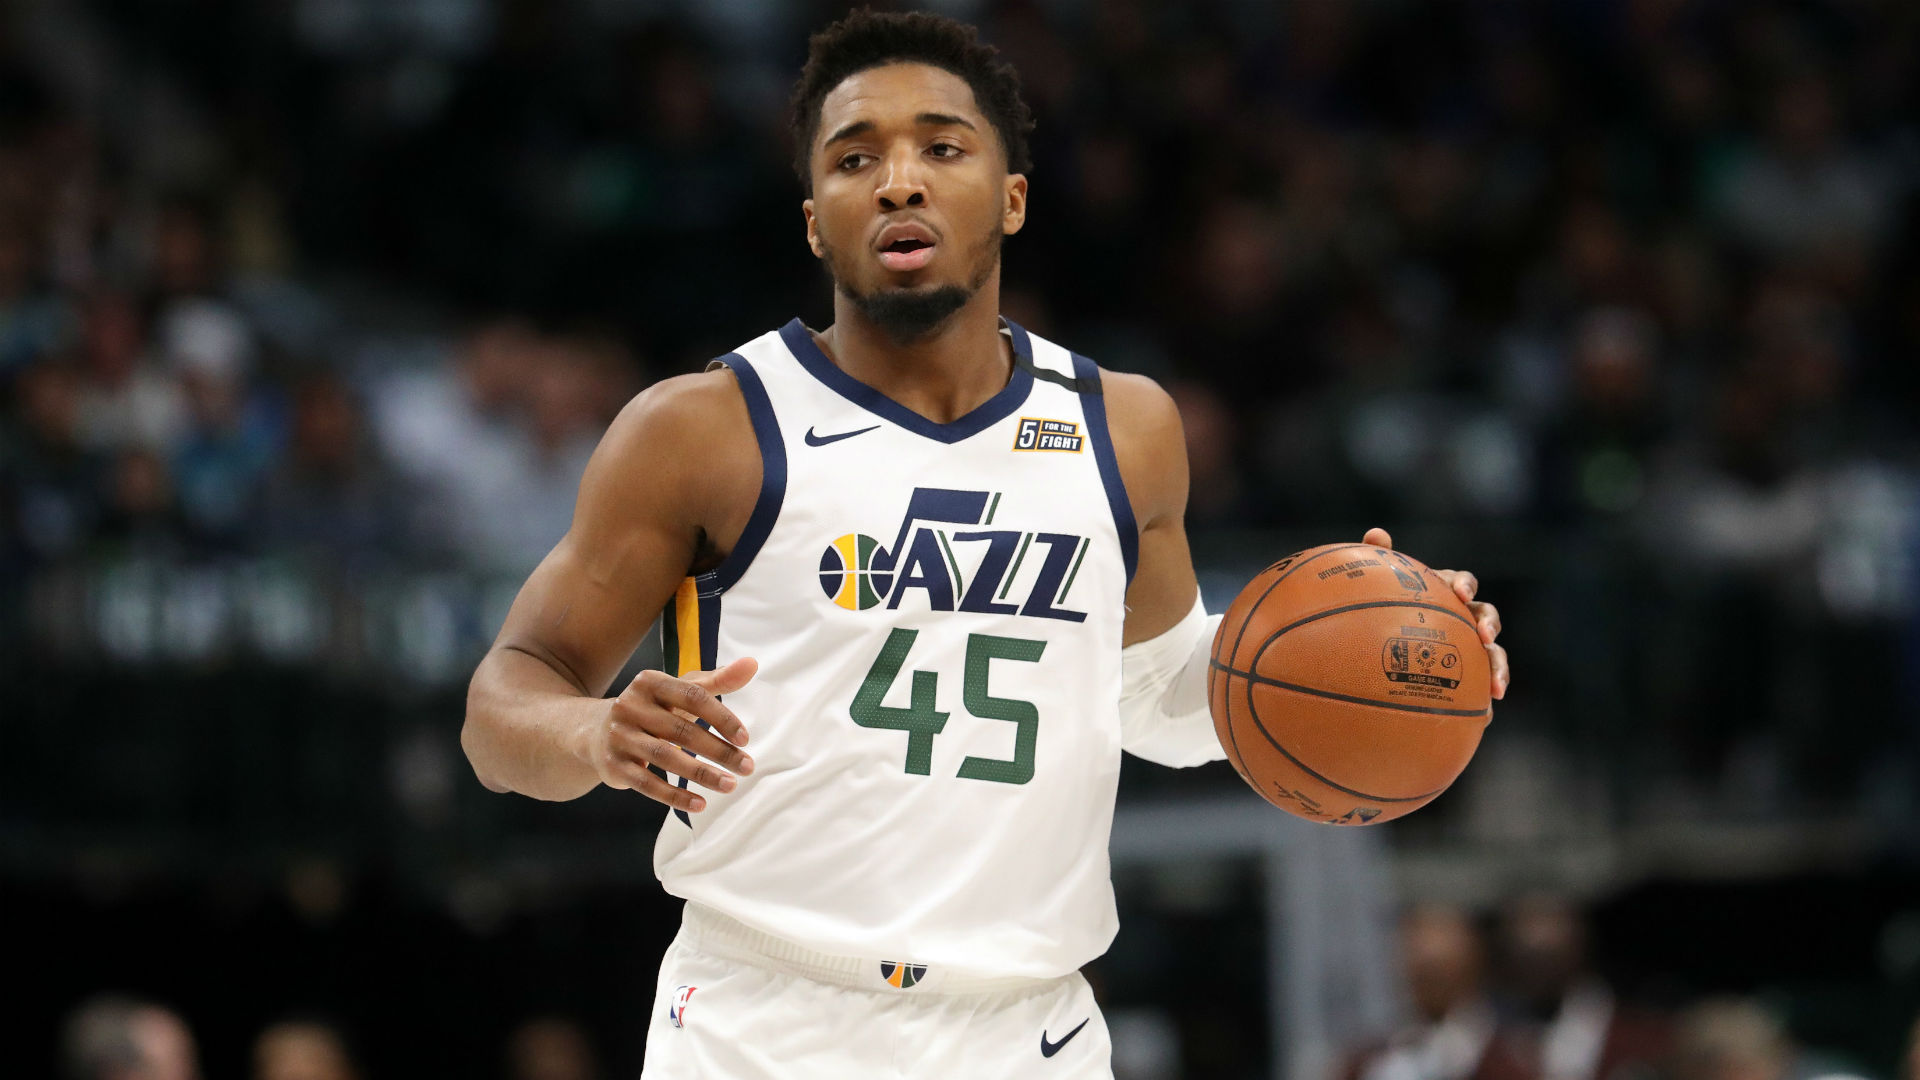 Coronavirus: Utah Jazz guard Donovan Mitchell confirms positive test